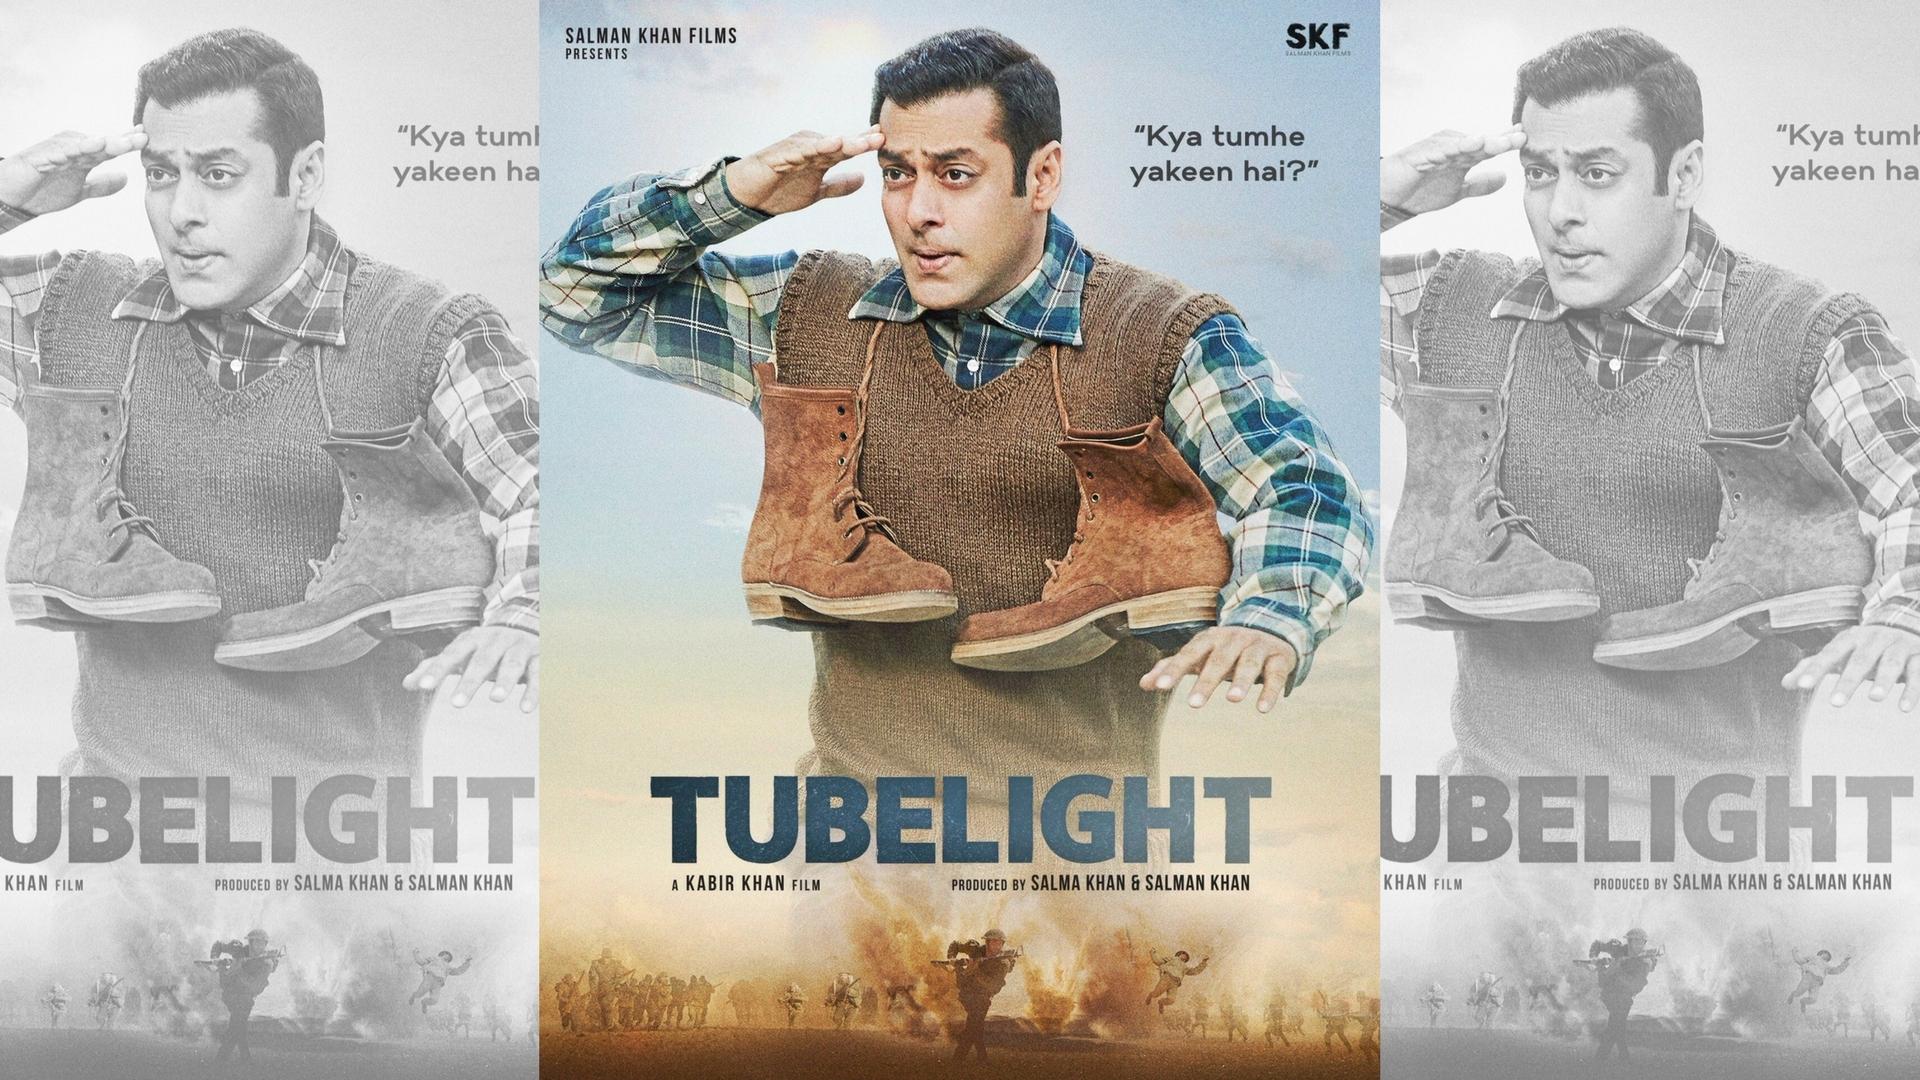 Salman Khan Makes An Appearance On The New Tubelight Poster - The Quint-4206